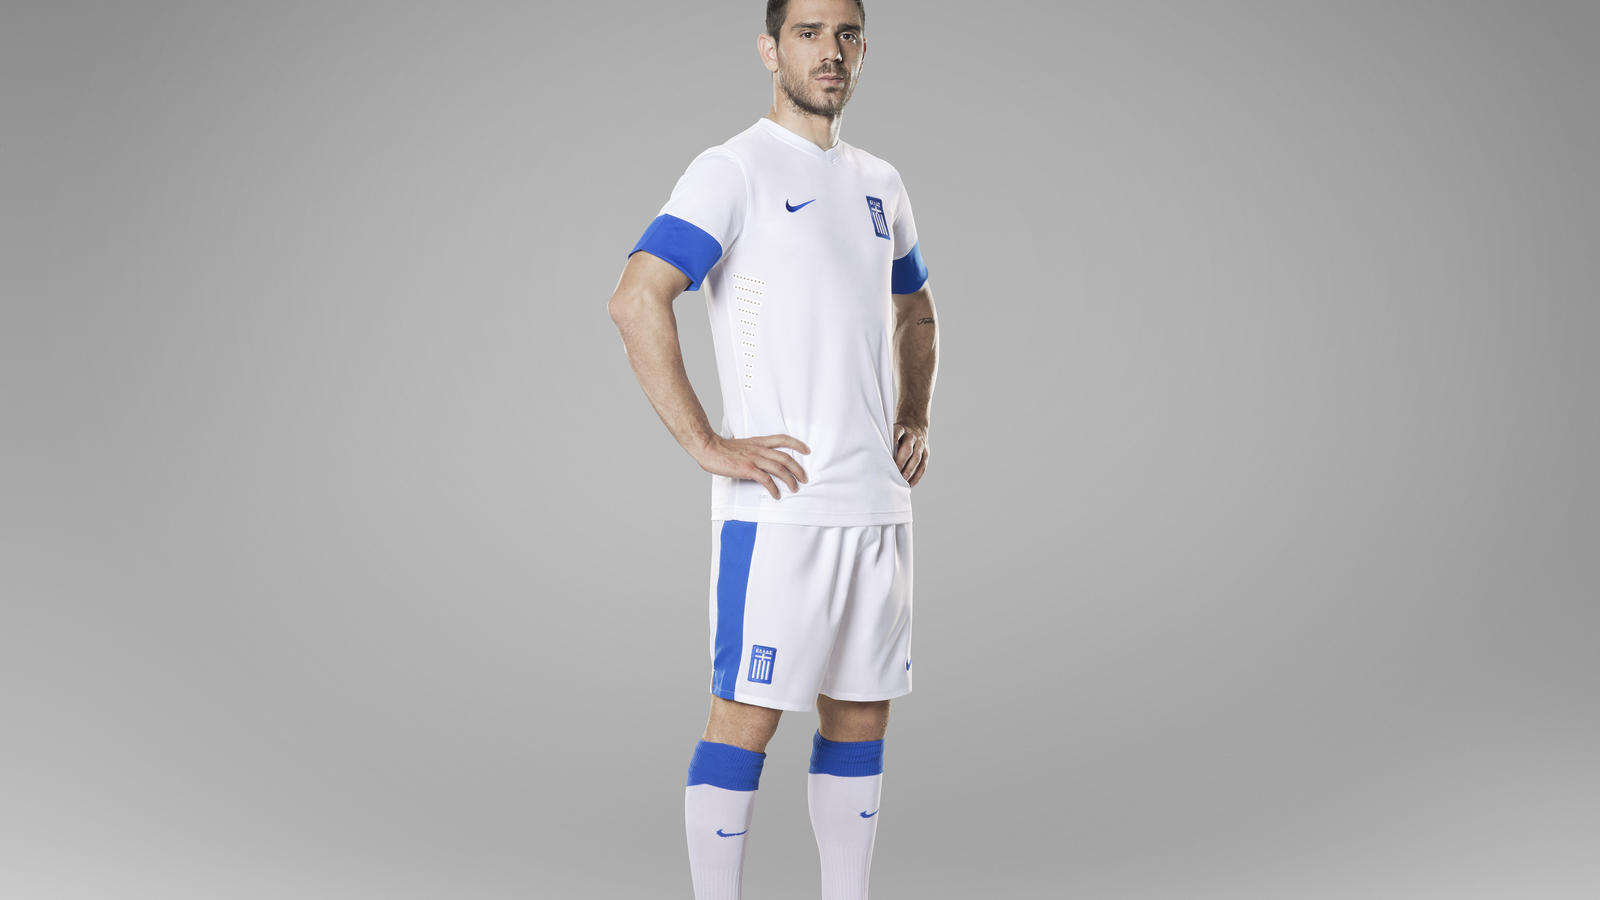 super popular 63d83 b0916 Greek national team head to the pitch in new Nike kit - Nike ...